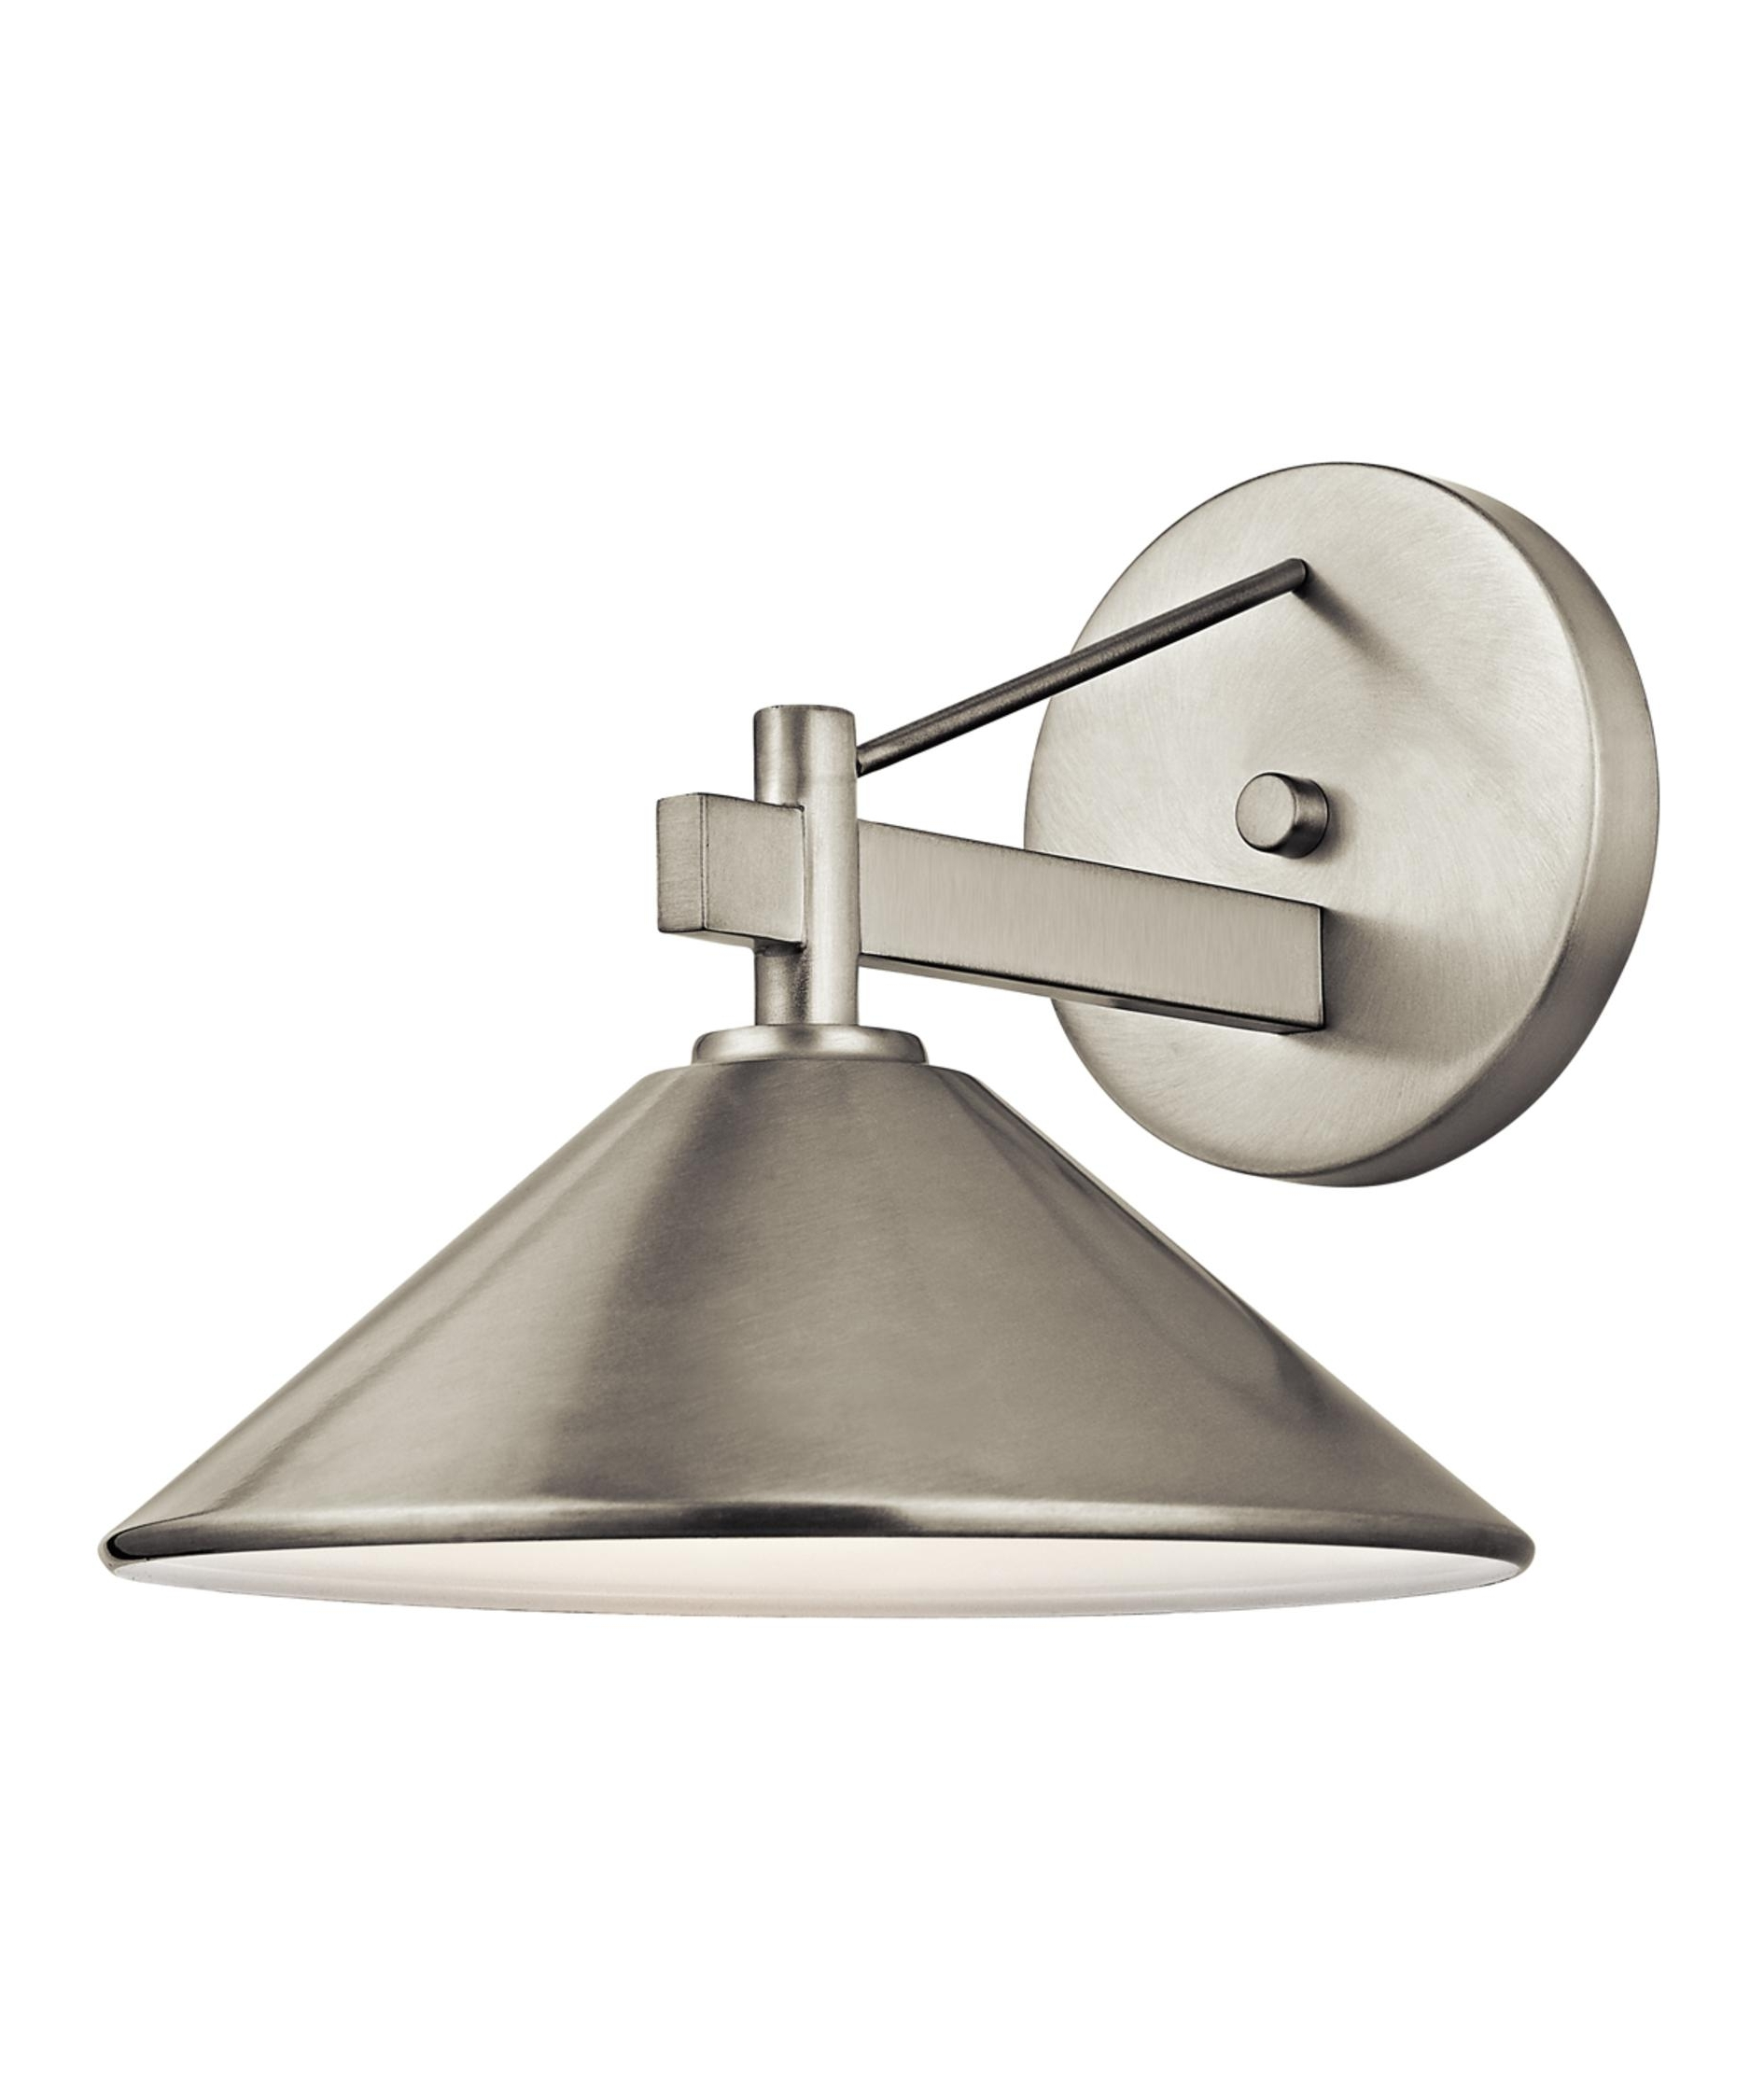 Kichler 49060 Ripley 10 Inch Wide 1 Light Outdoor Wall Light With Regard To Most Current Brushed Nickel Outdoor Wall Lighting (Gallery 12 of 20)